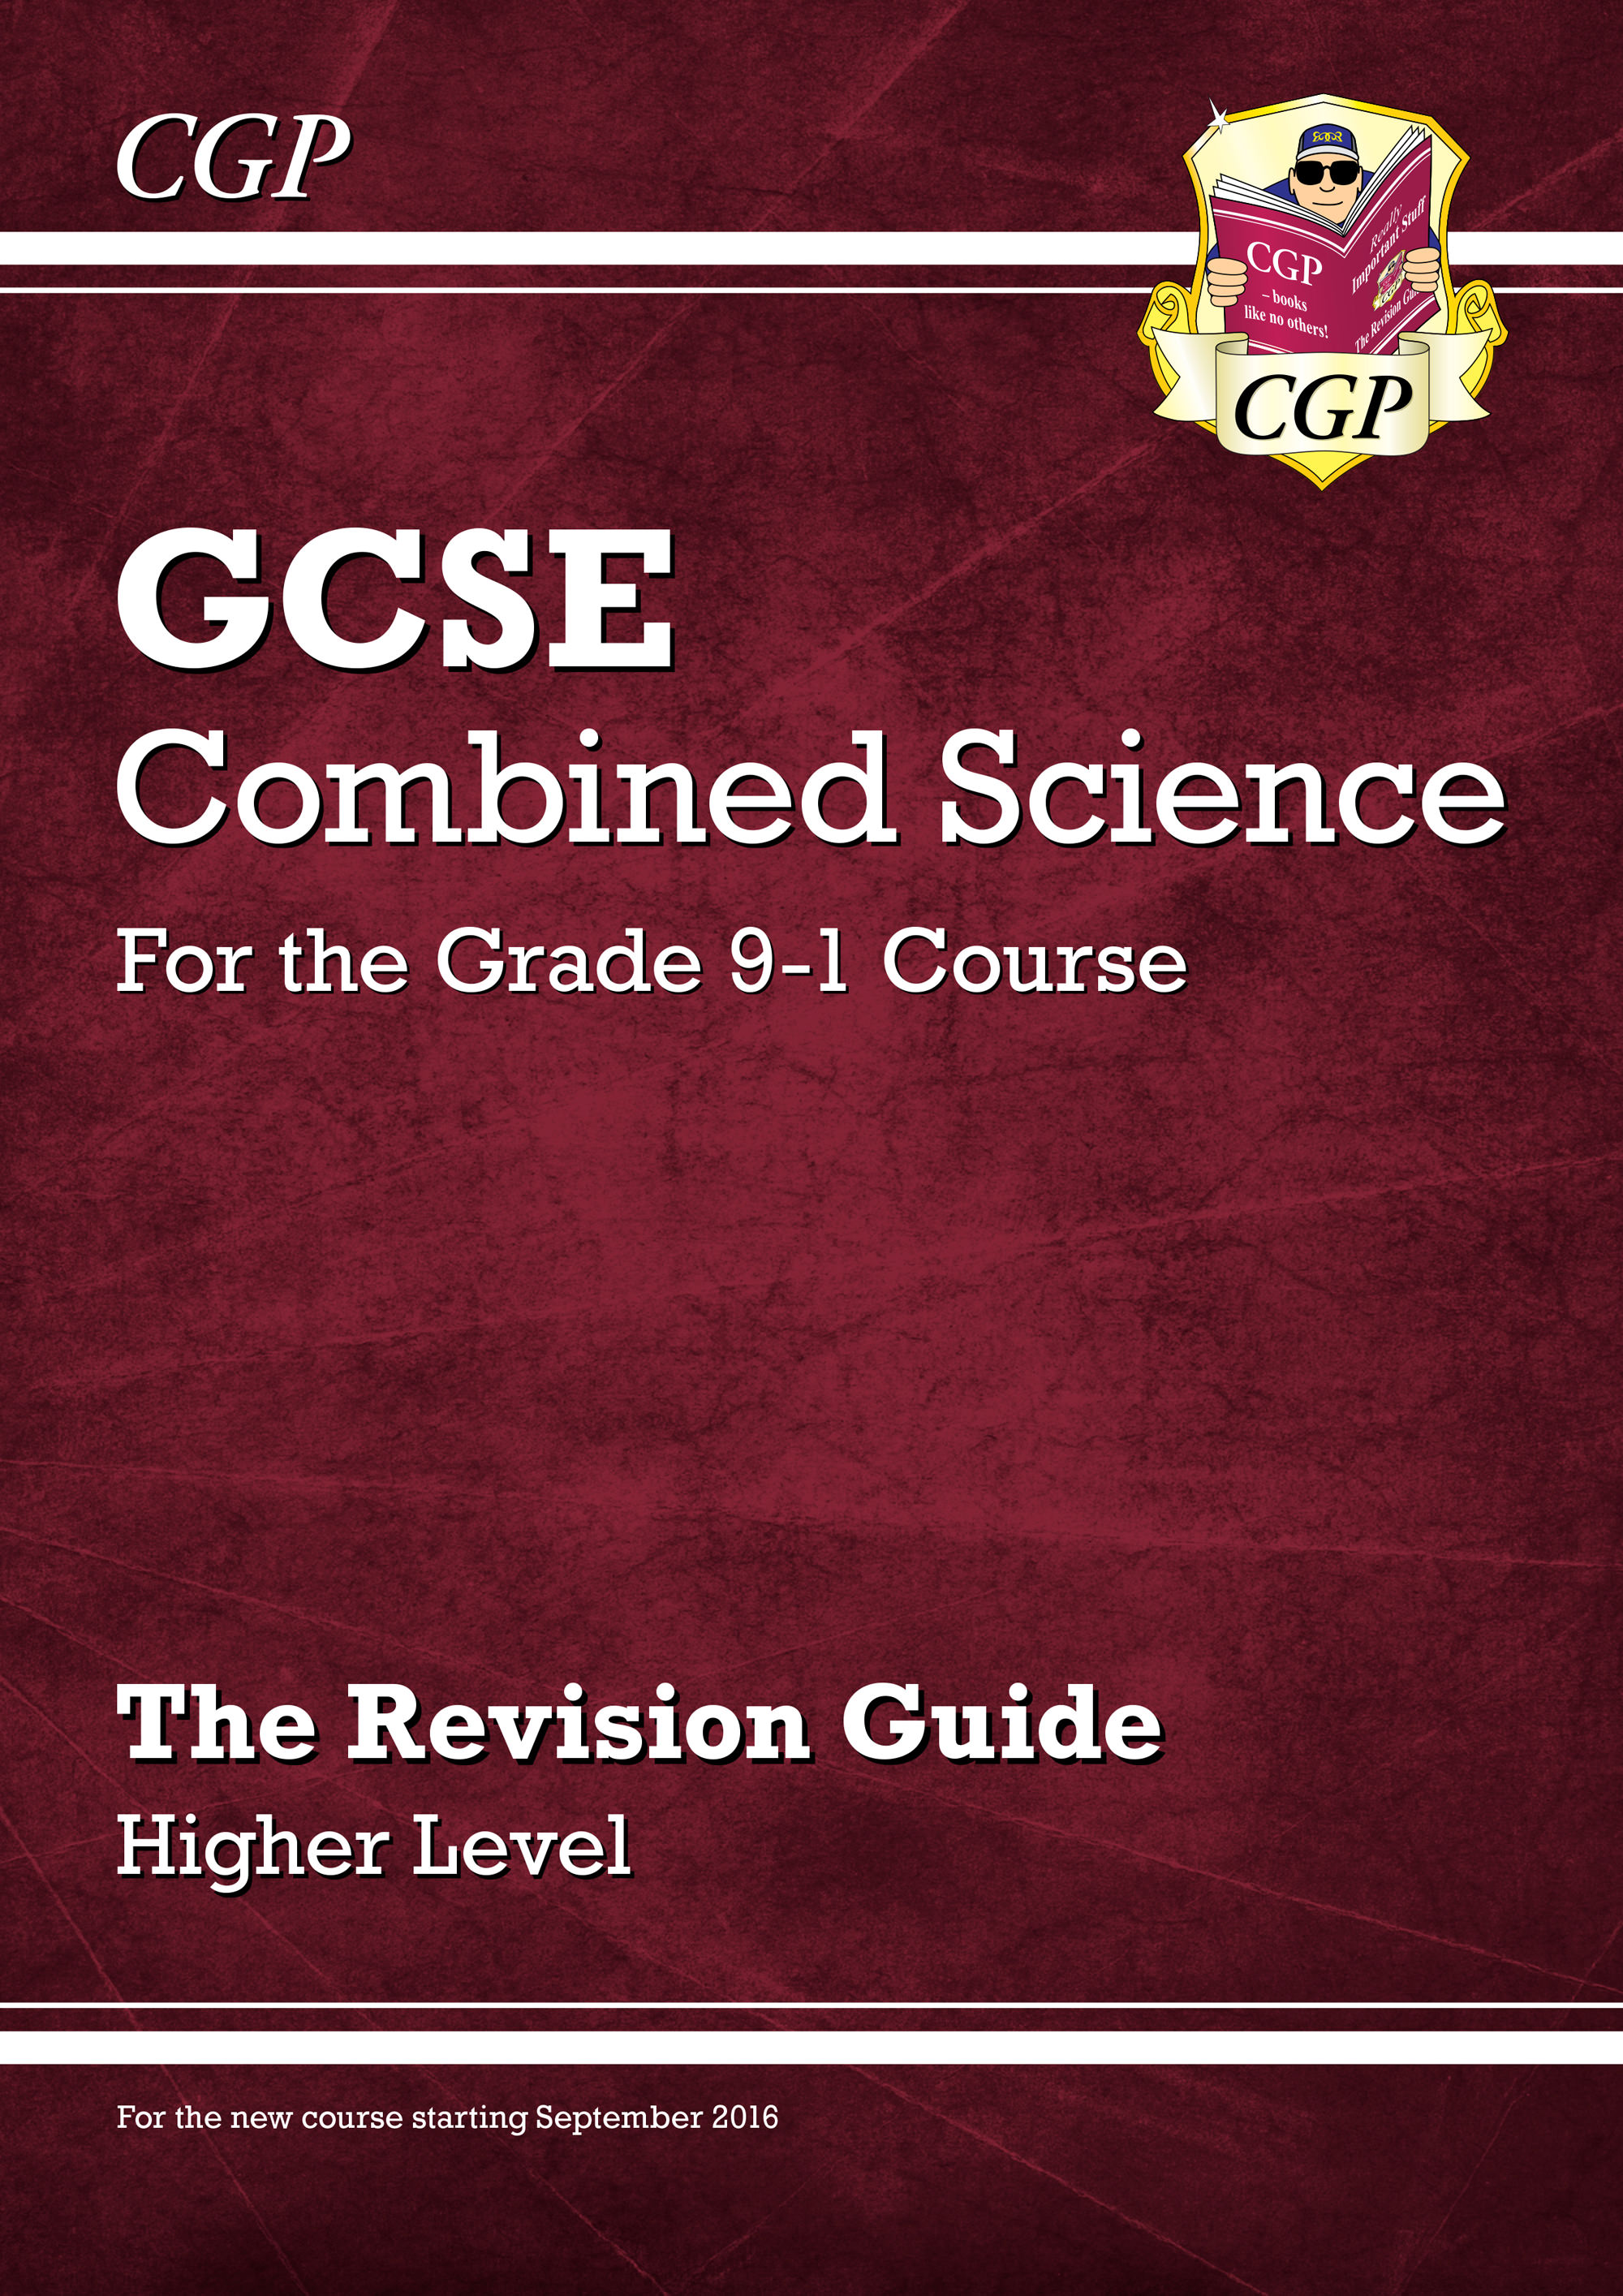 SHR45DK - New Grade 9-1 GCSE Combined Science: Revision Guide - Higher